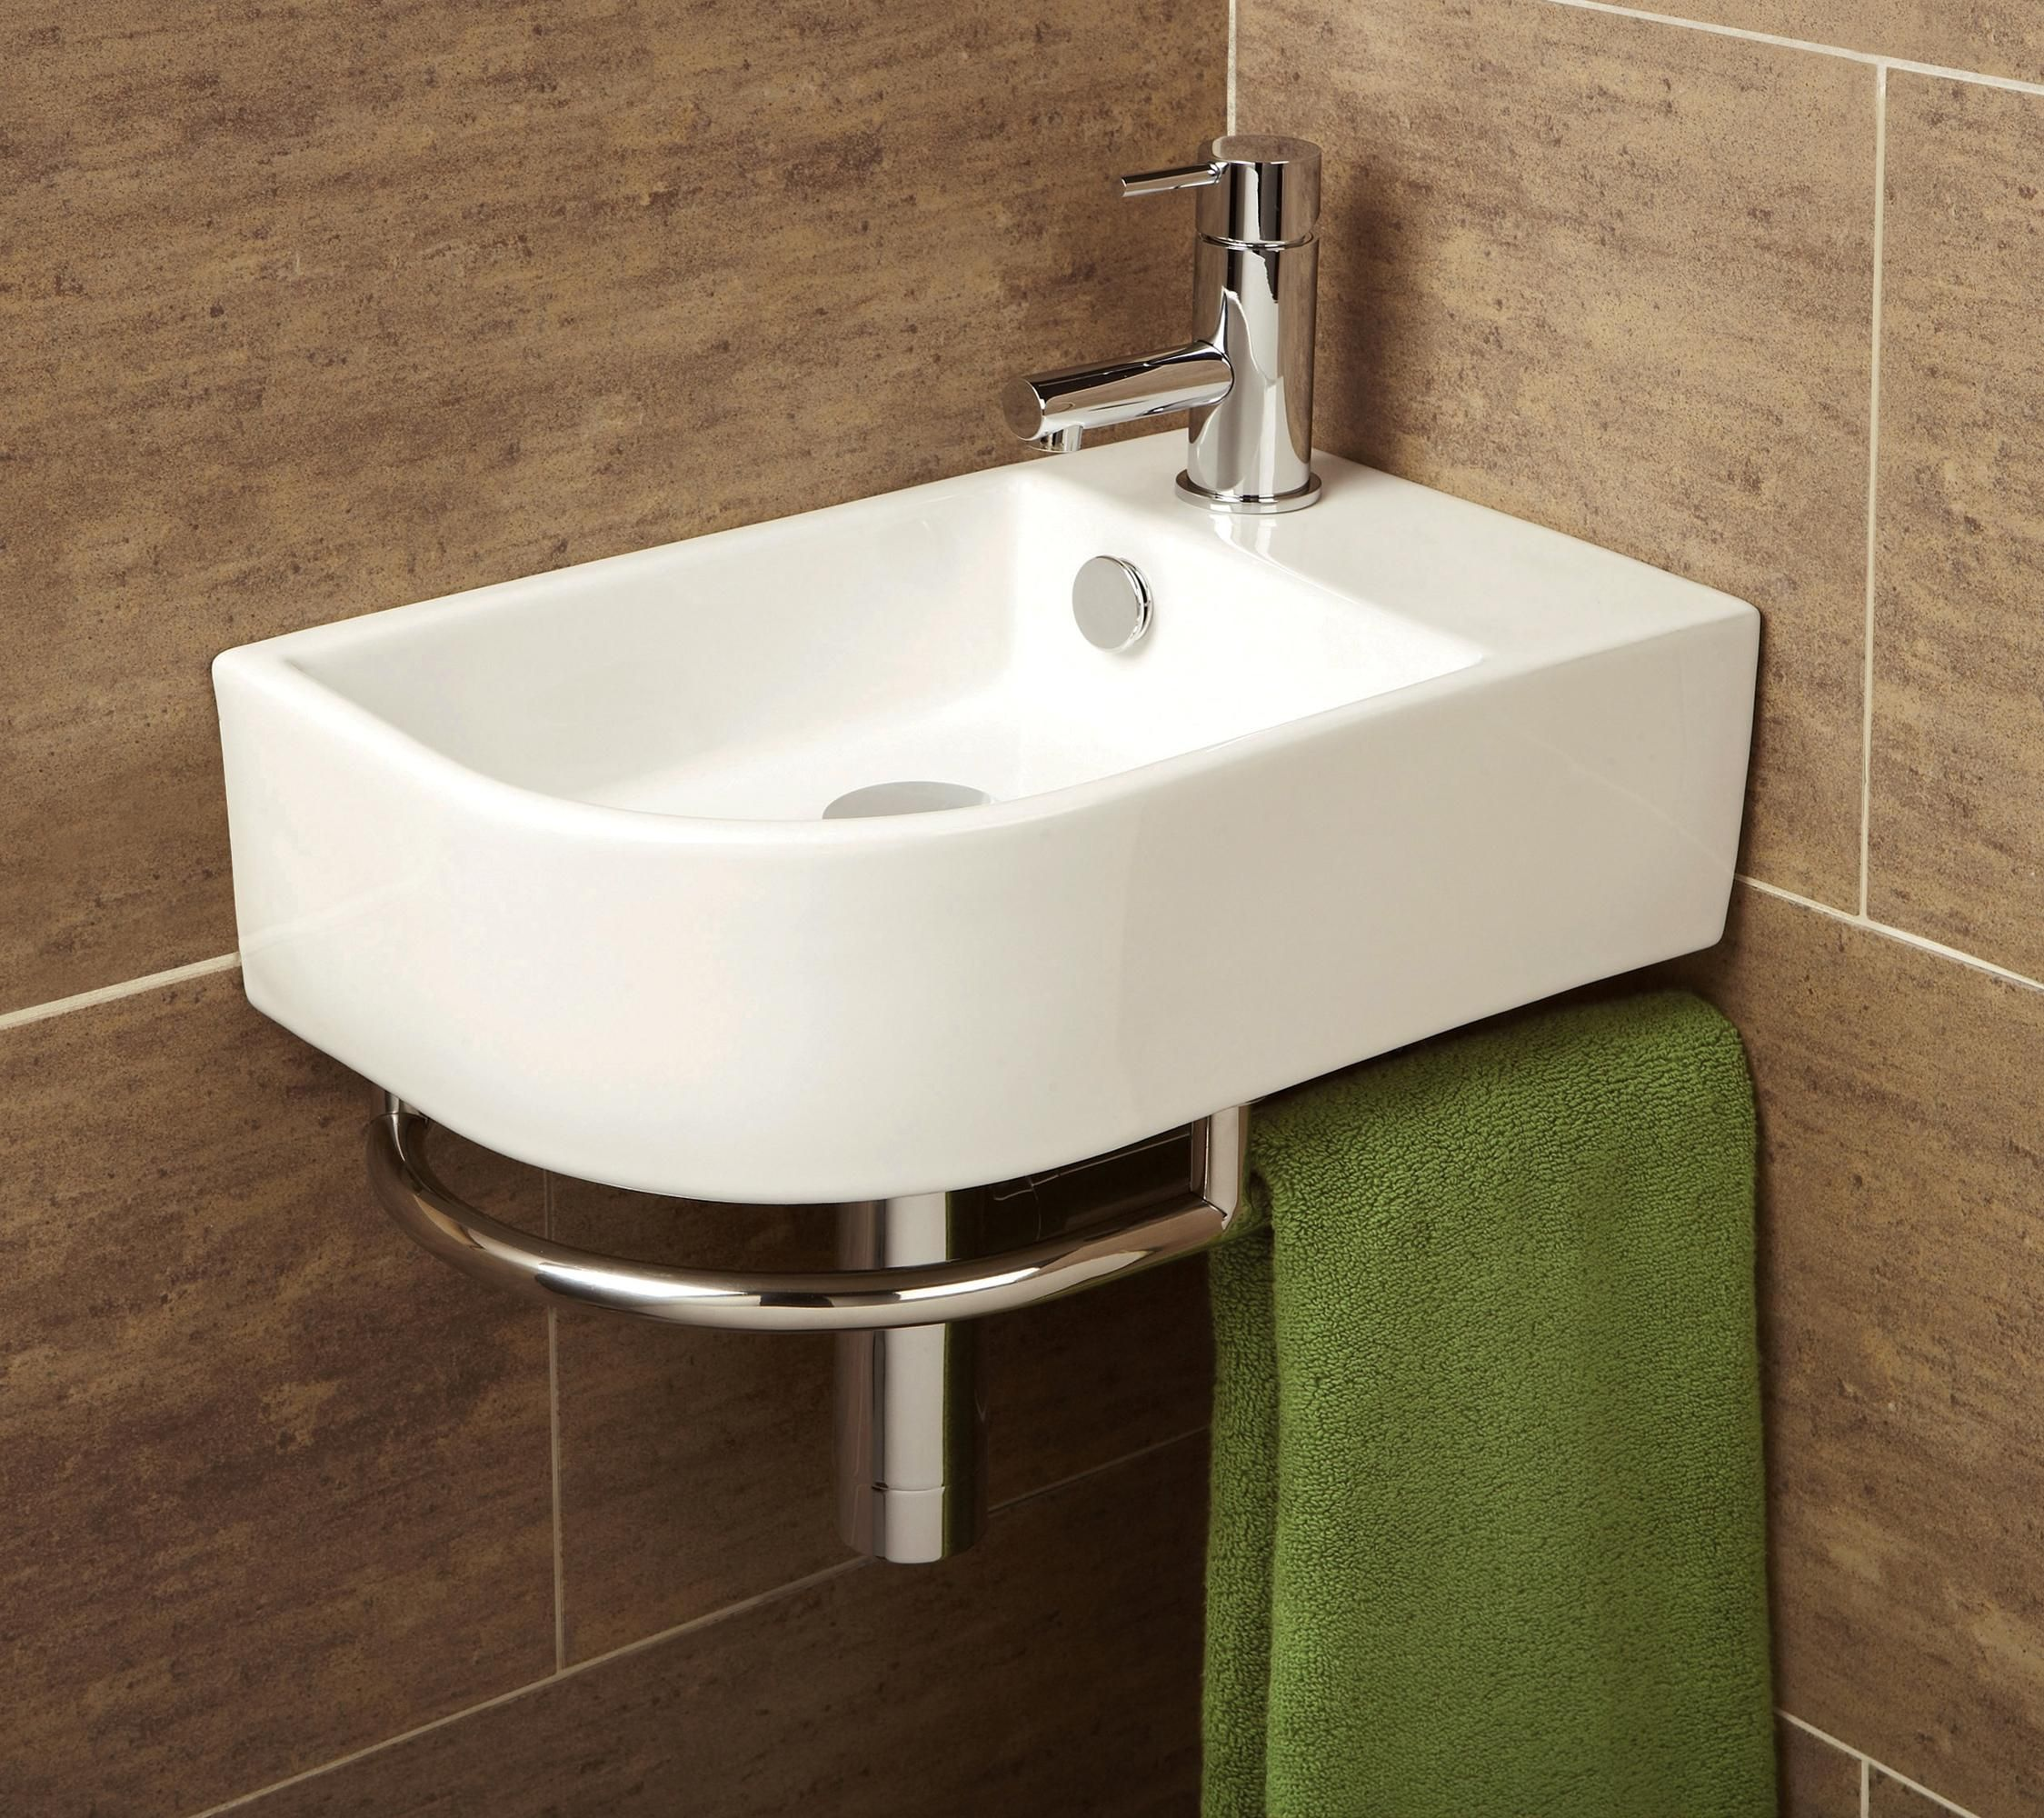 hand aacefcdacbbcdd india steel entrancing bathroom size sink images per kitchen wash price for using vastu undermount tub full a about in basin designs